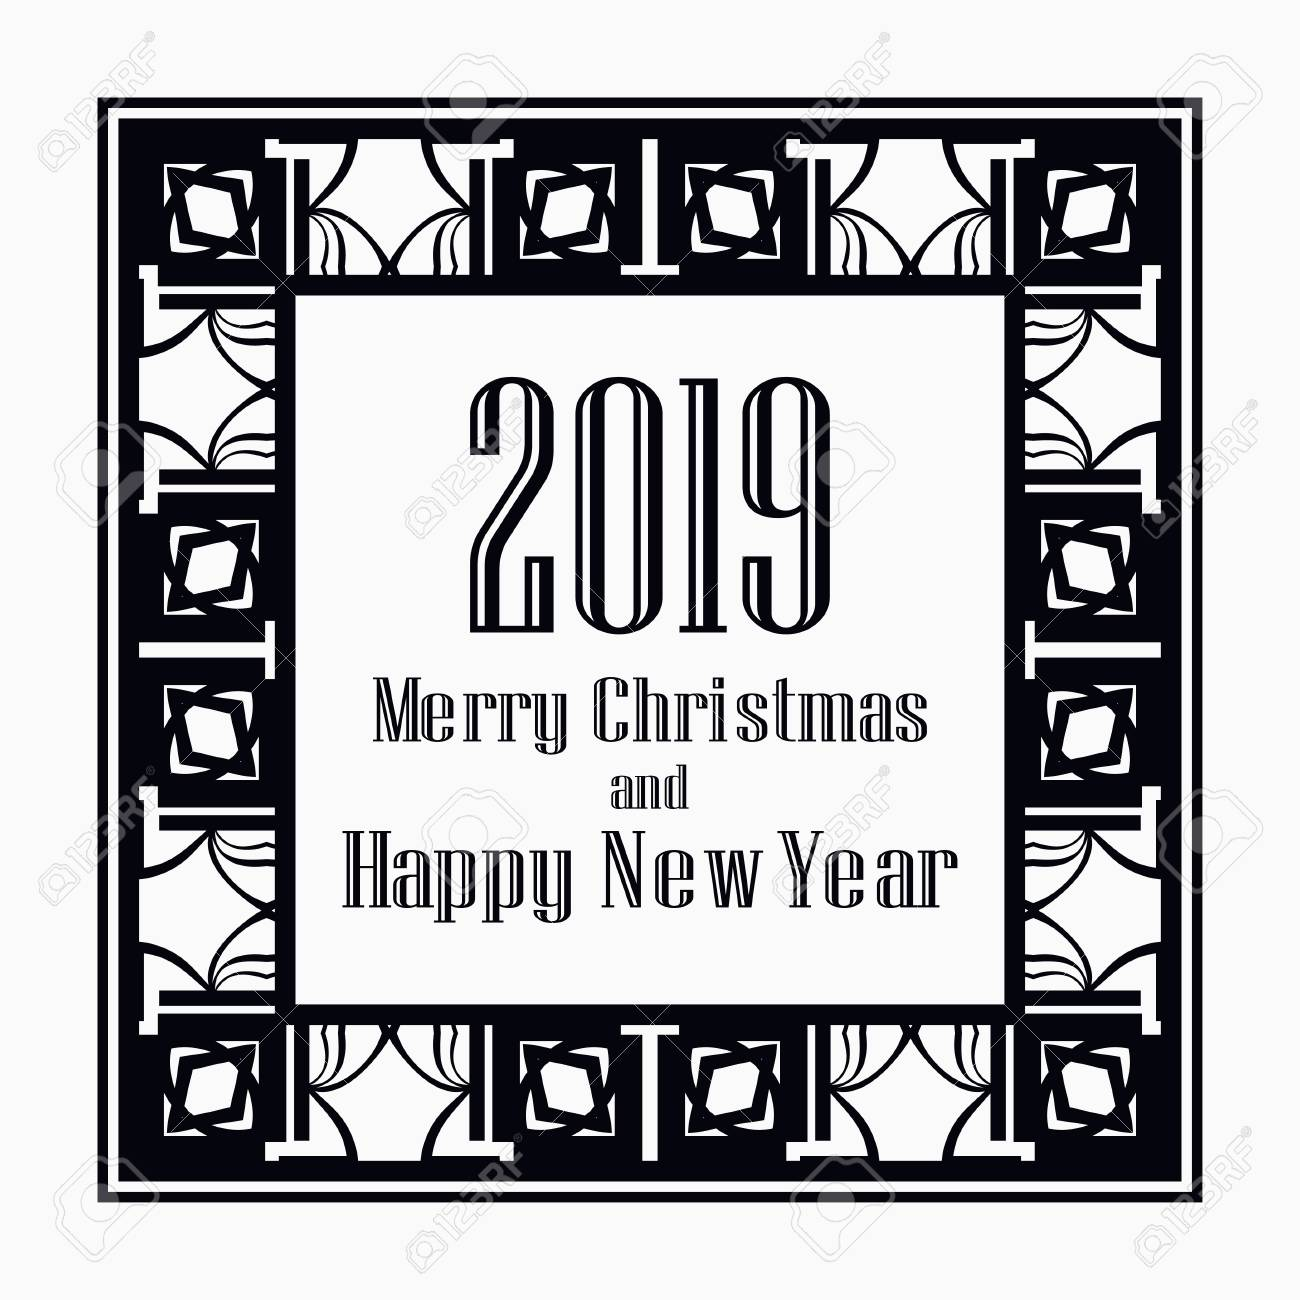 art deco border and frame merry christmas and happy new year greeting card 2019